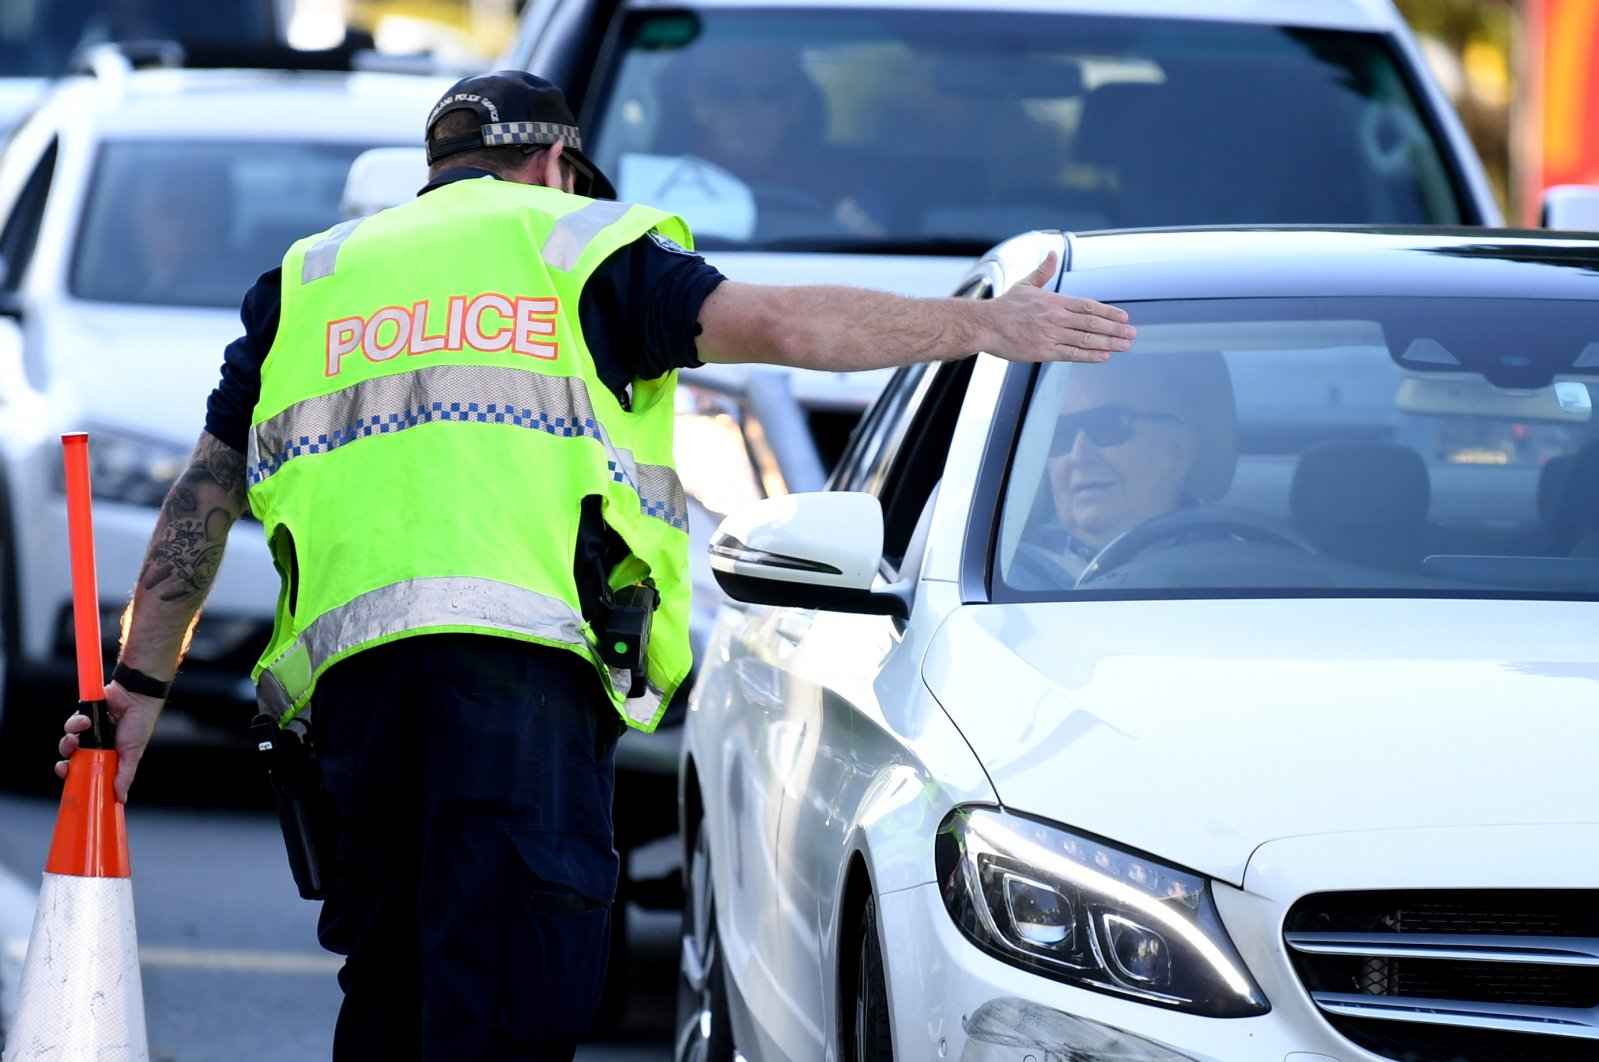 A police officer directs a car for further inspection at a checkpoint on the Queensland-New South Wales state border in Coolangatta on the Gold Coast, Queensland, Australia, July 1, 2020. (EPA Photo)